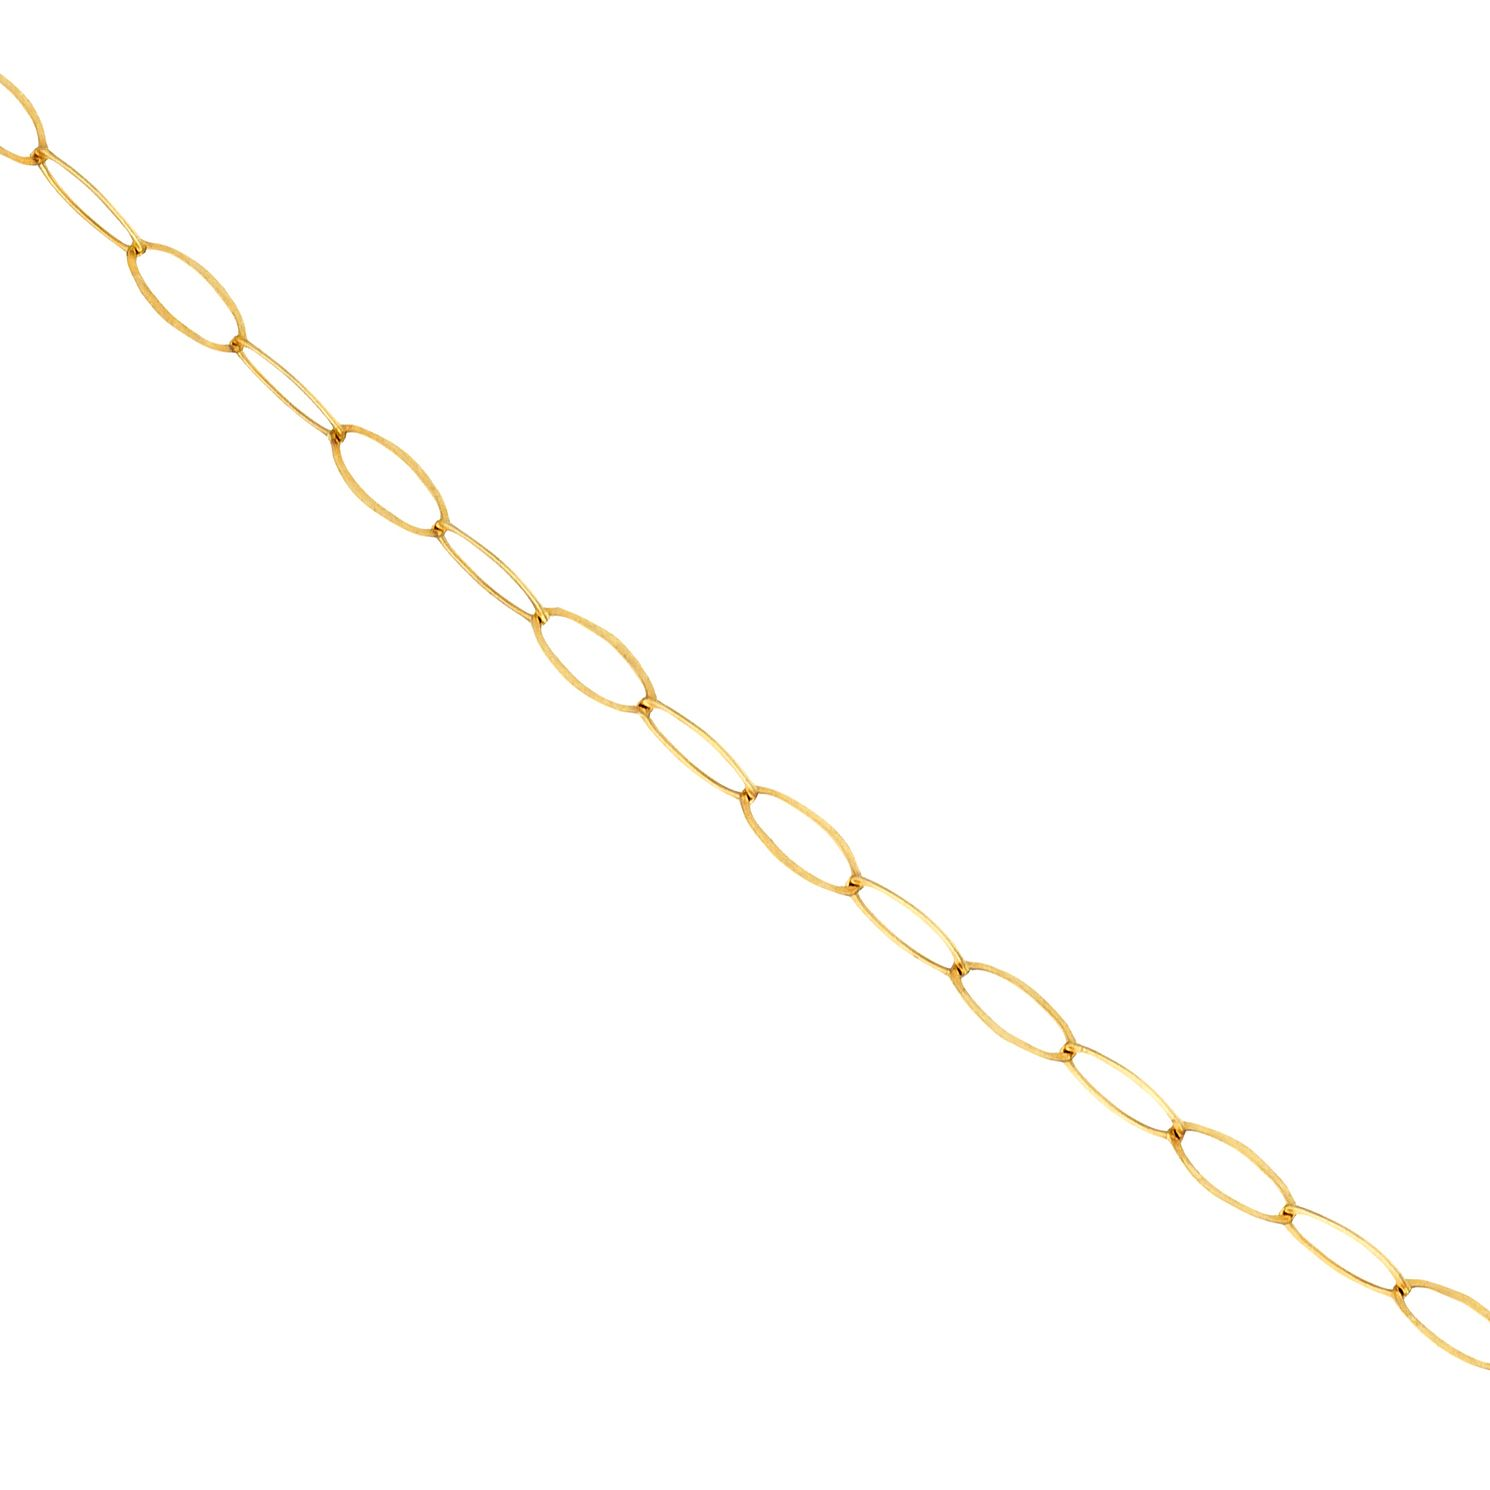 9ct Yellow Gold Trace Chain Necklace - Product number 9668276